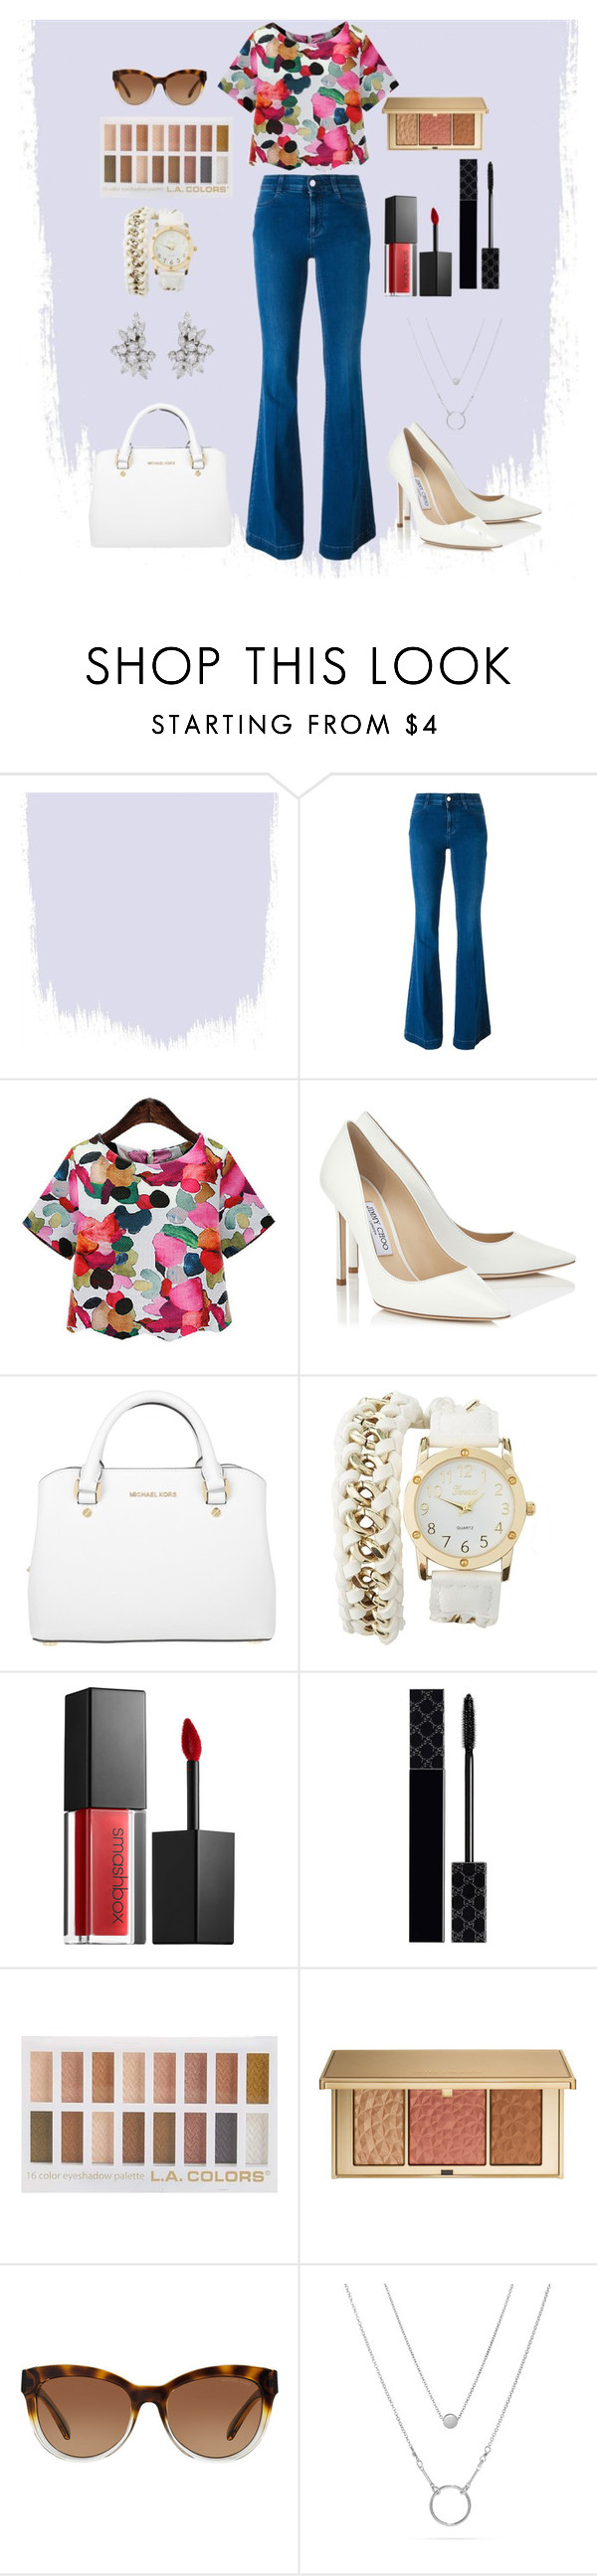 """6/25.4"" by jomstyle ❤ liked on Polyvore featuring STELLA McCARTNEY, Jimmy Choo, Michael Kors, Charlotte Russe, Smashbox, Gucci, Estée Lauder and uniqfind"